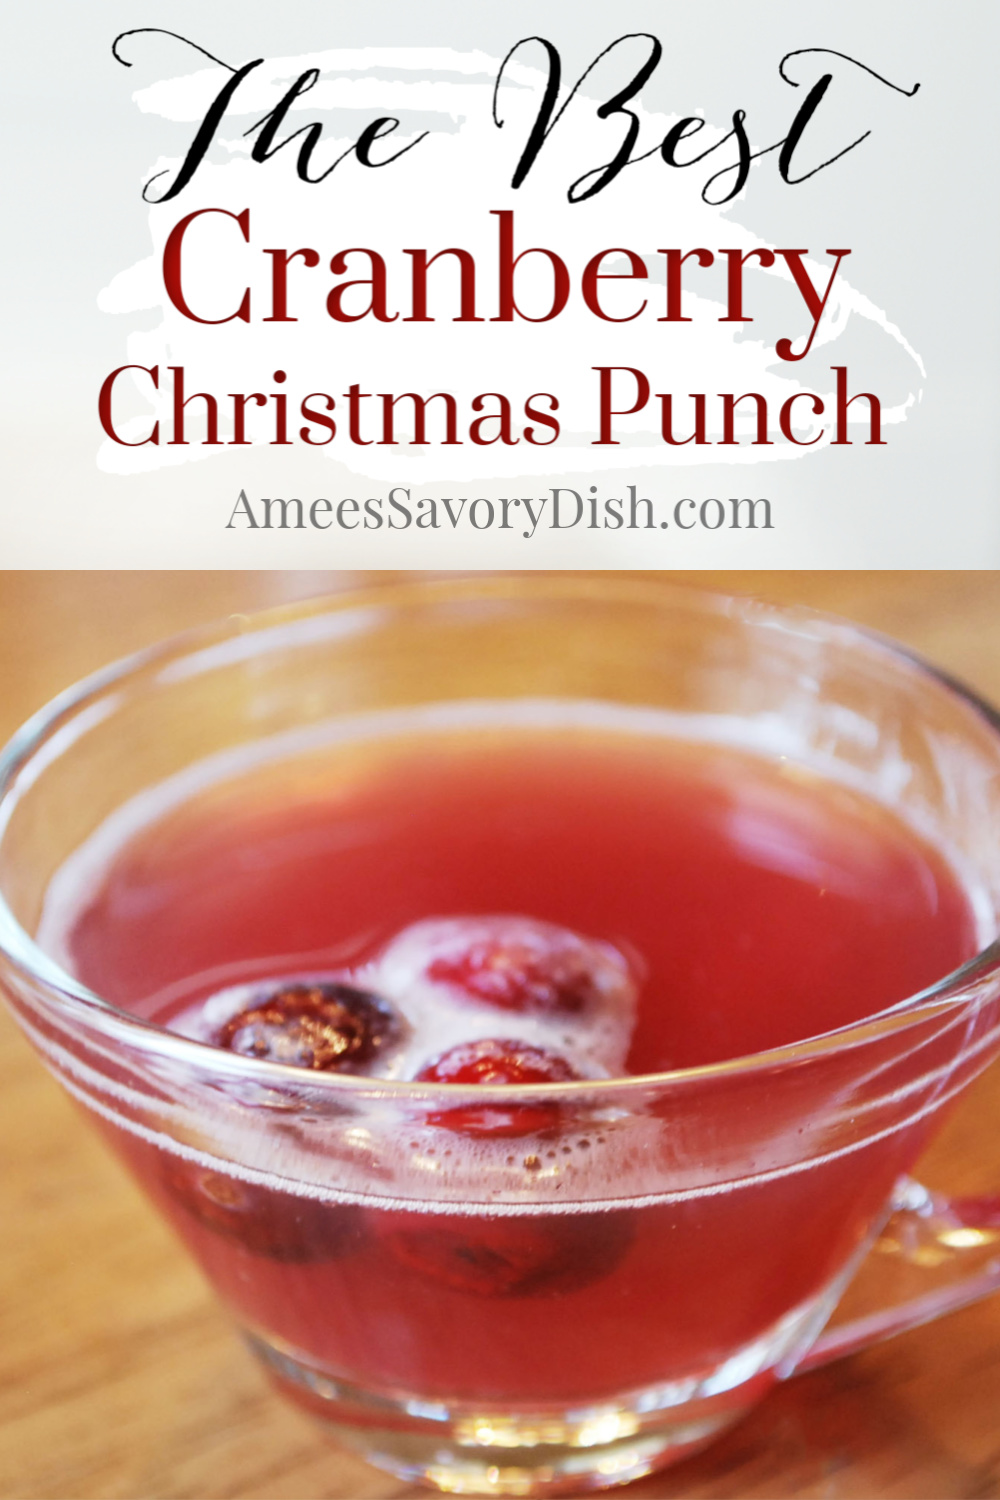 This is the absolute best Christmas punch recipe made with light cranberry juice, ginger ale, unsweetened pineapple juice, and almond extract.  I always get requests for this lightened-up punch recipe at holiday parties. via @Ameessavorydish